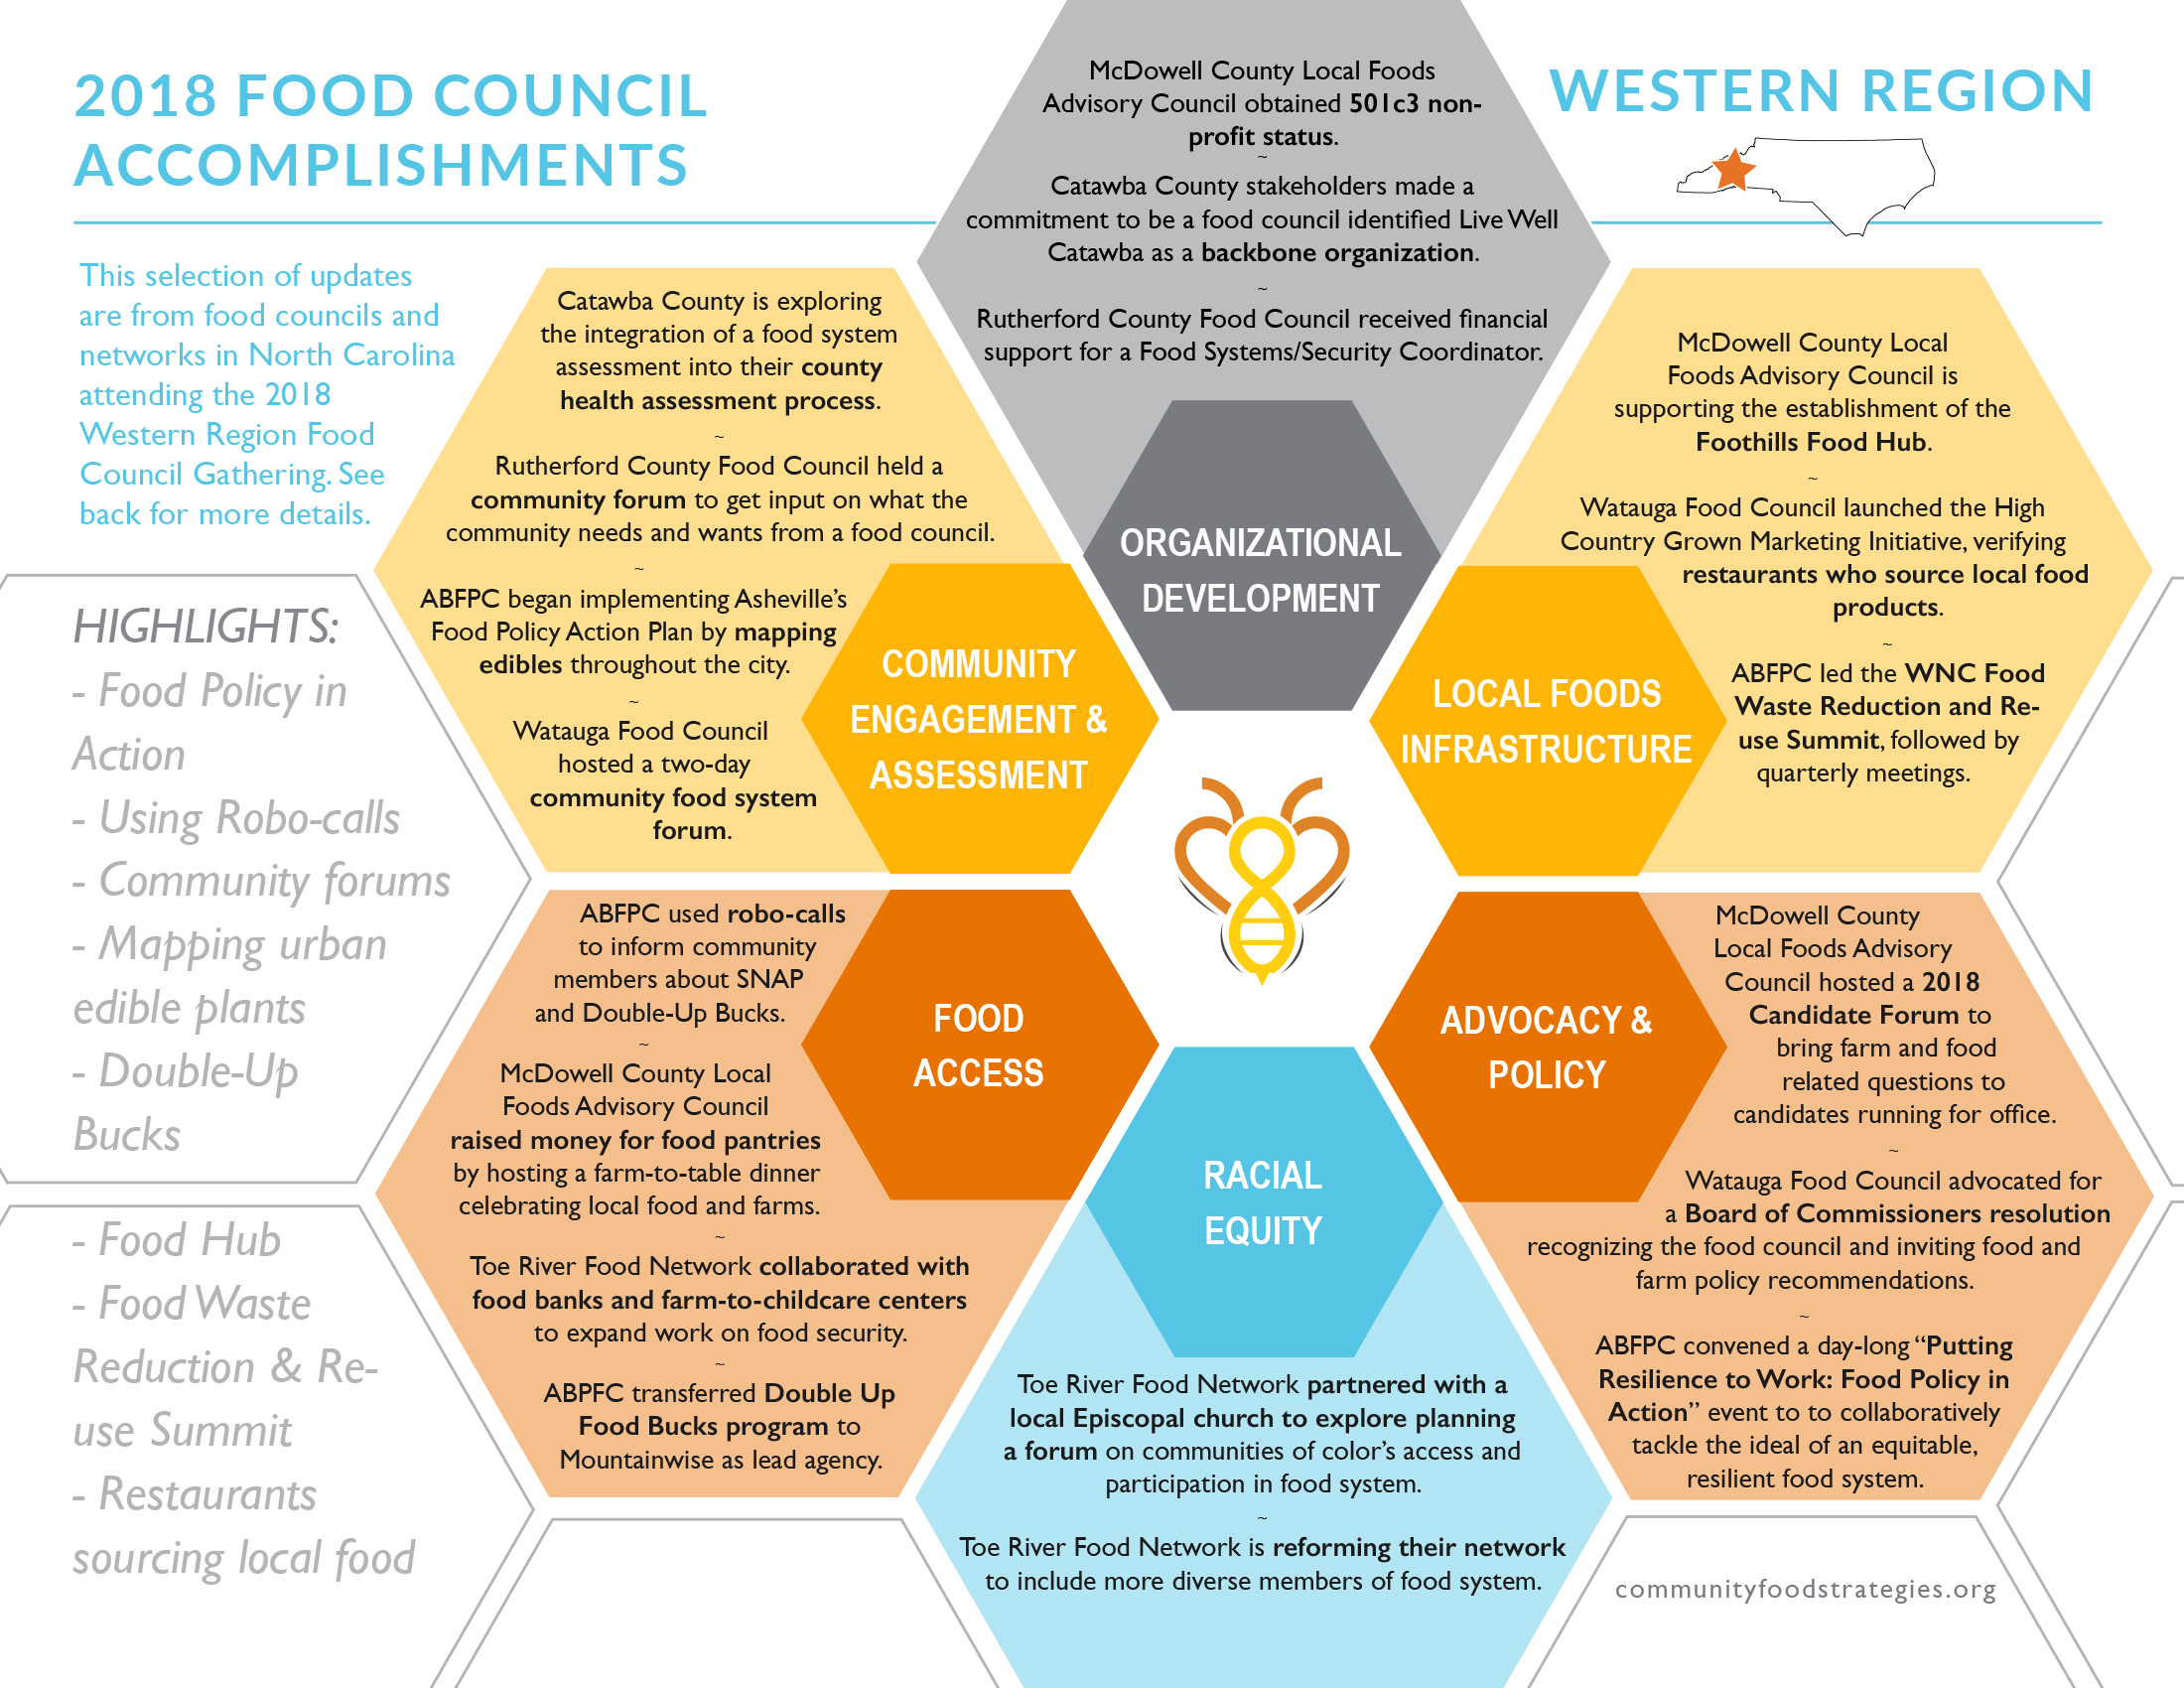 A selection of 2018 updates and accomplishments from food councils across western North Carolina.